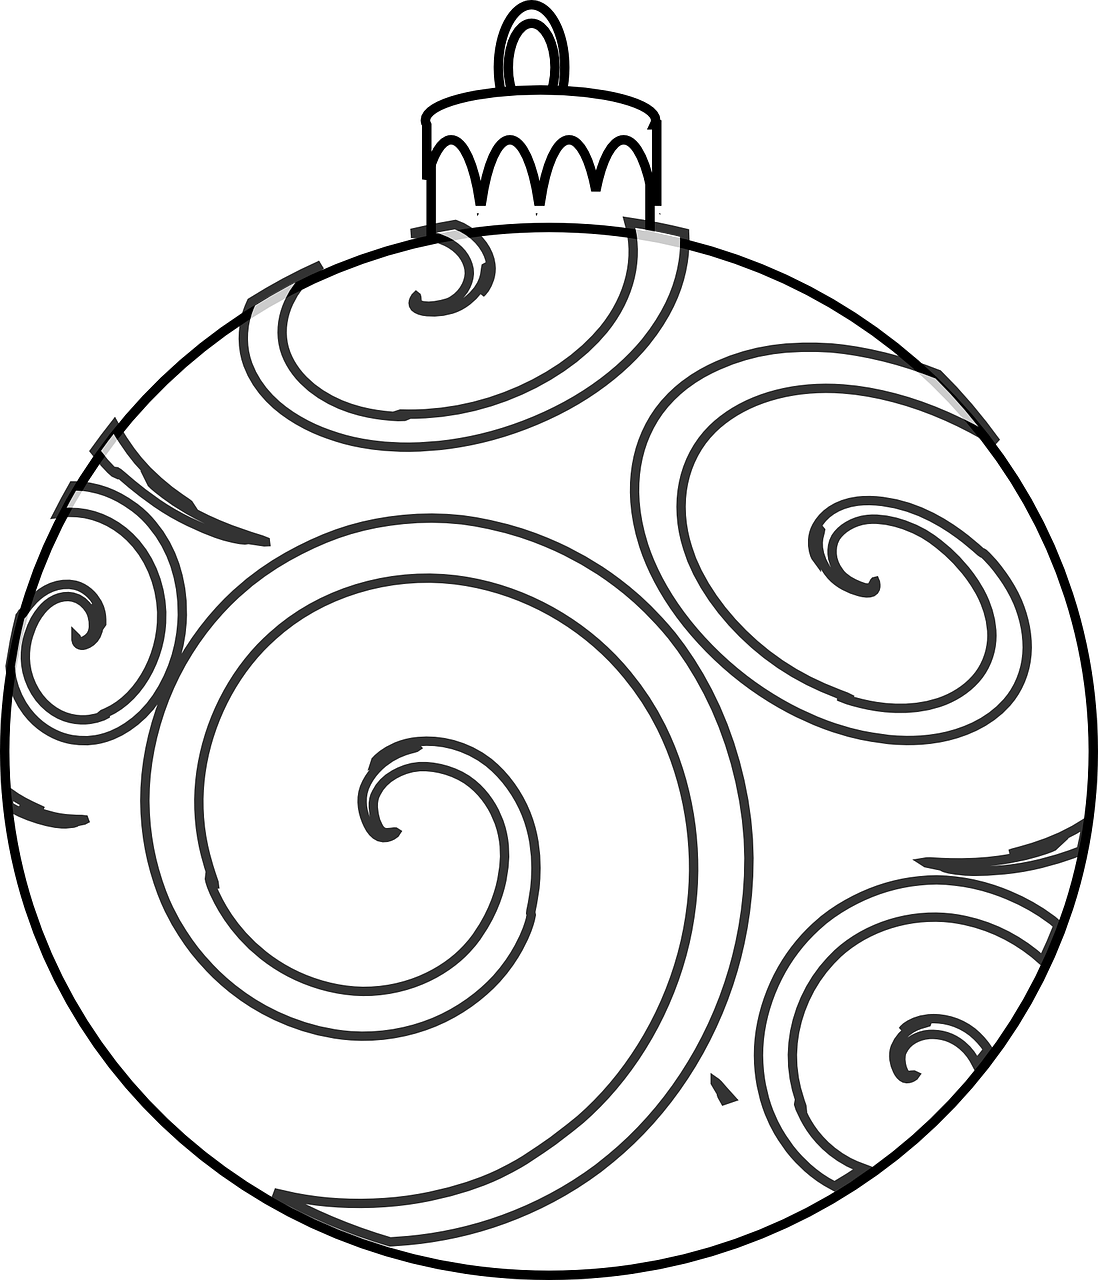 Christmas Ornament Clip Art Black And White Colour And Design Your Own Christmas Ornaments Printables